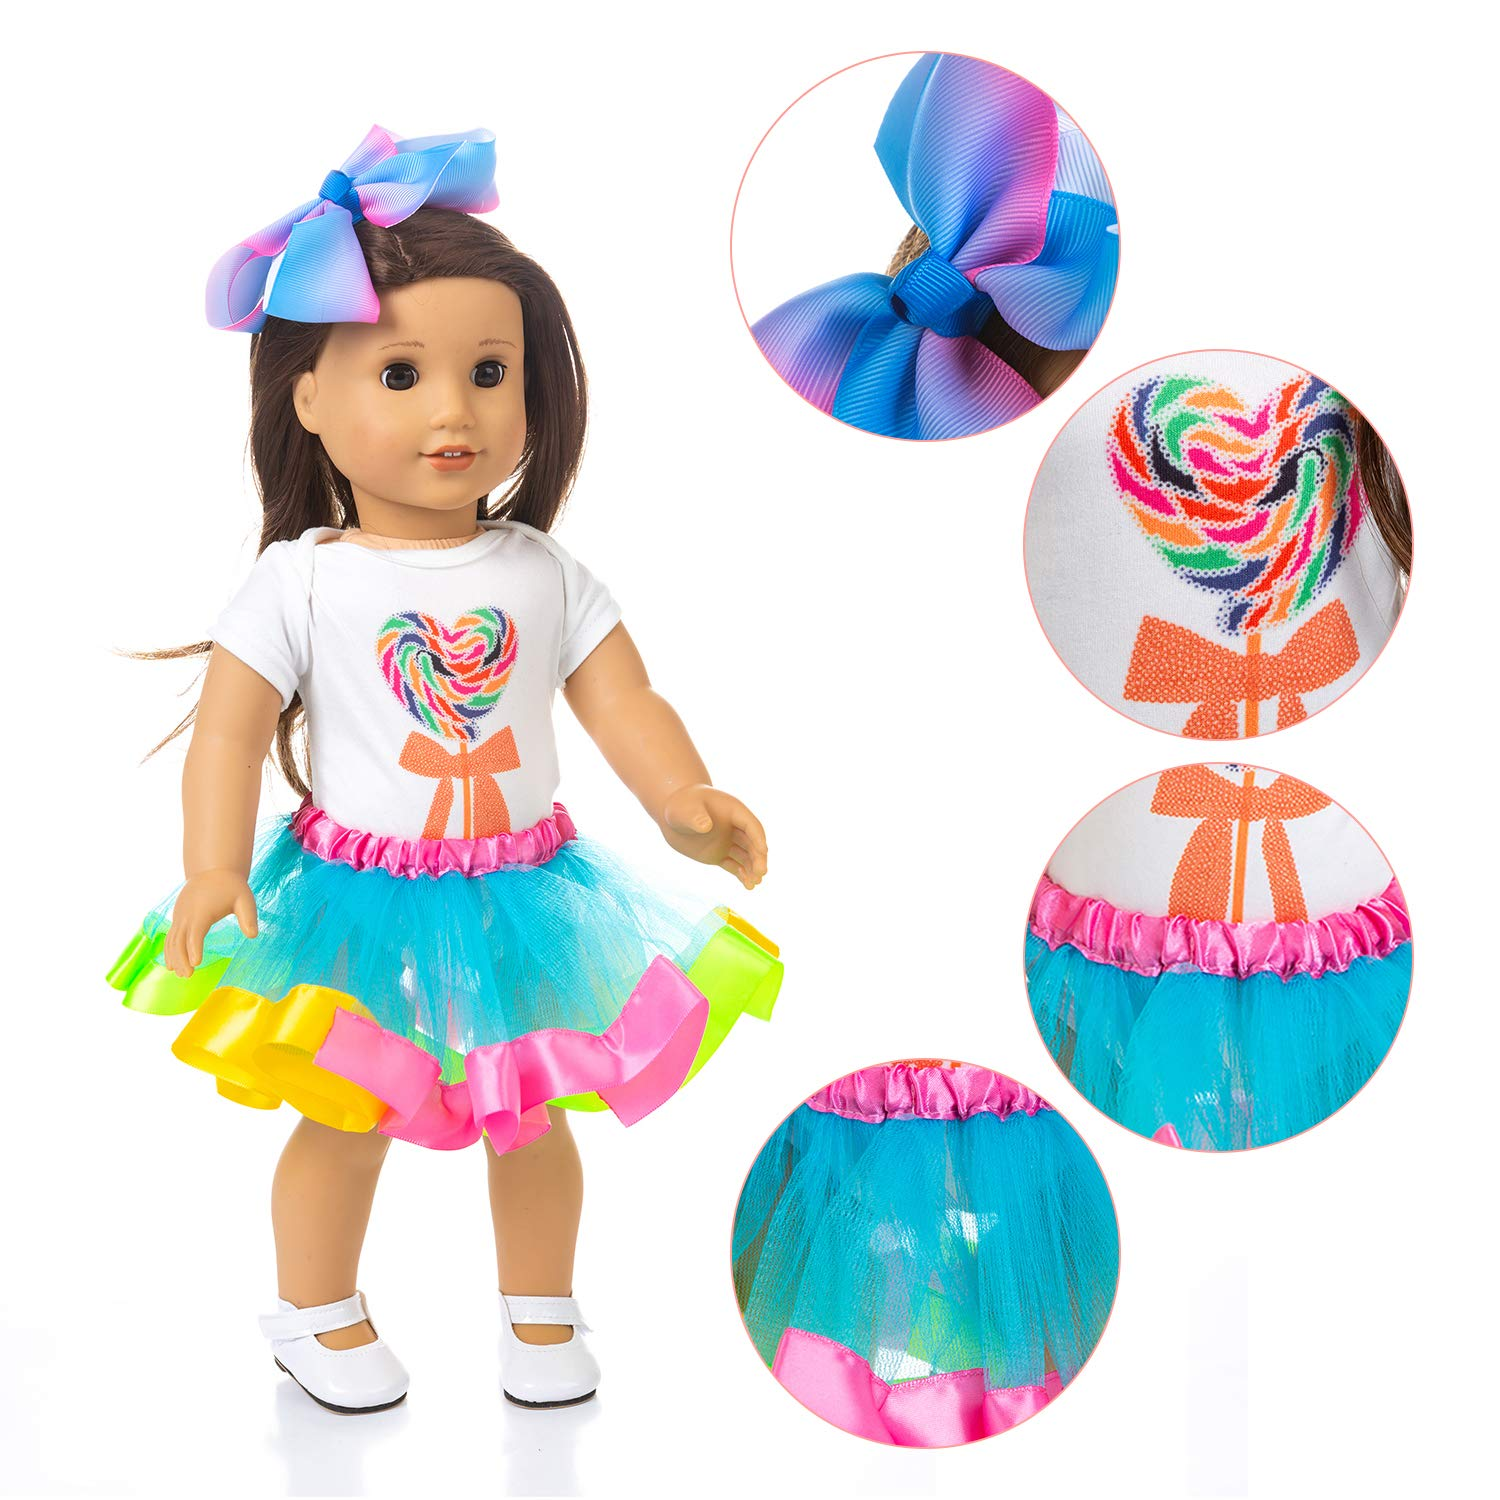 Ecore Fun Matching Girl /& Doll Dresses Clothes Outfits for 4-9 Years Girls and American 18 Girl Doll